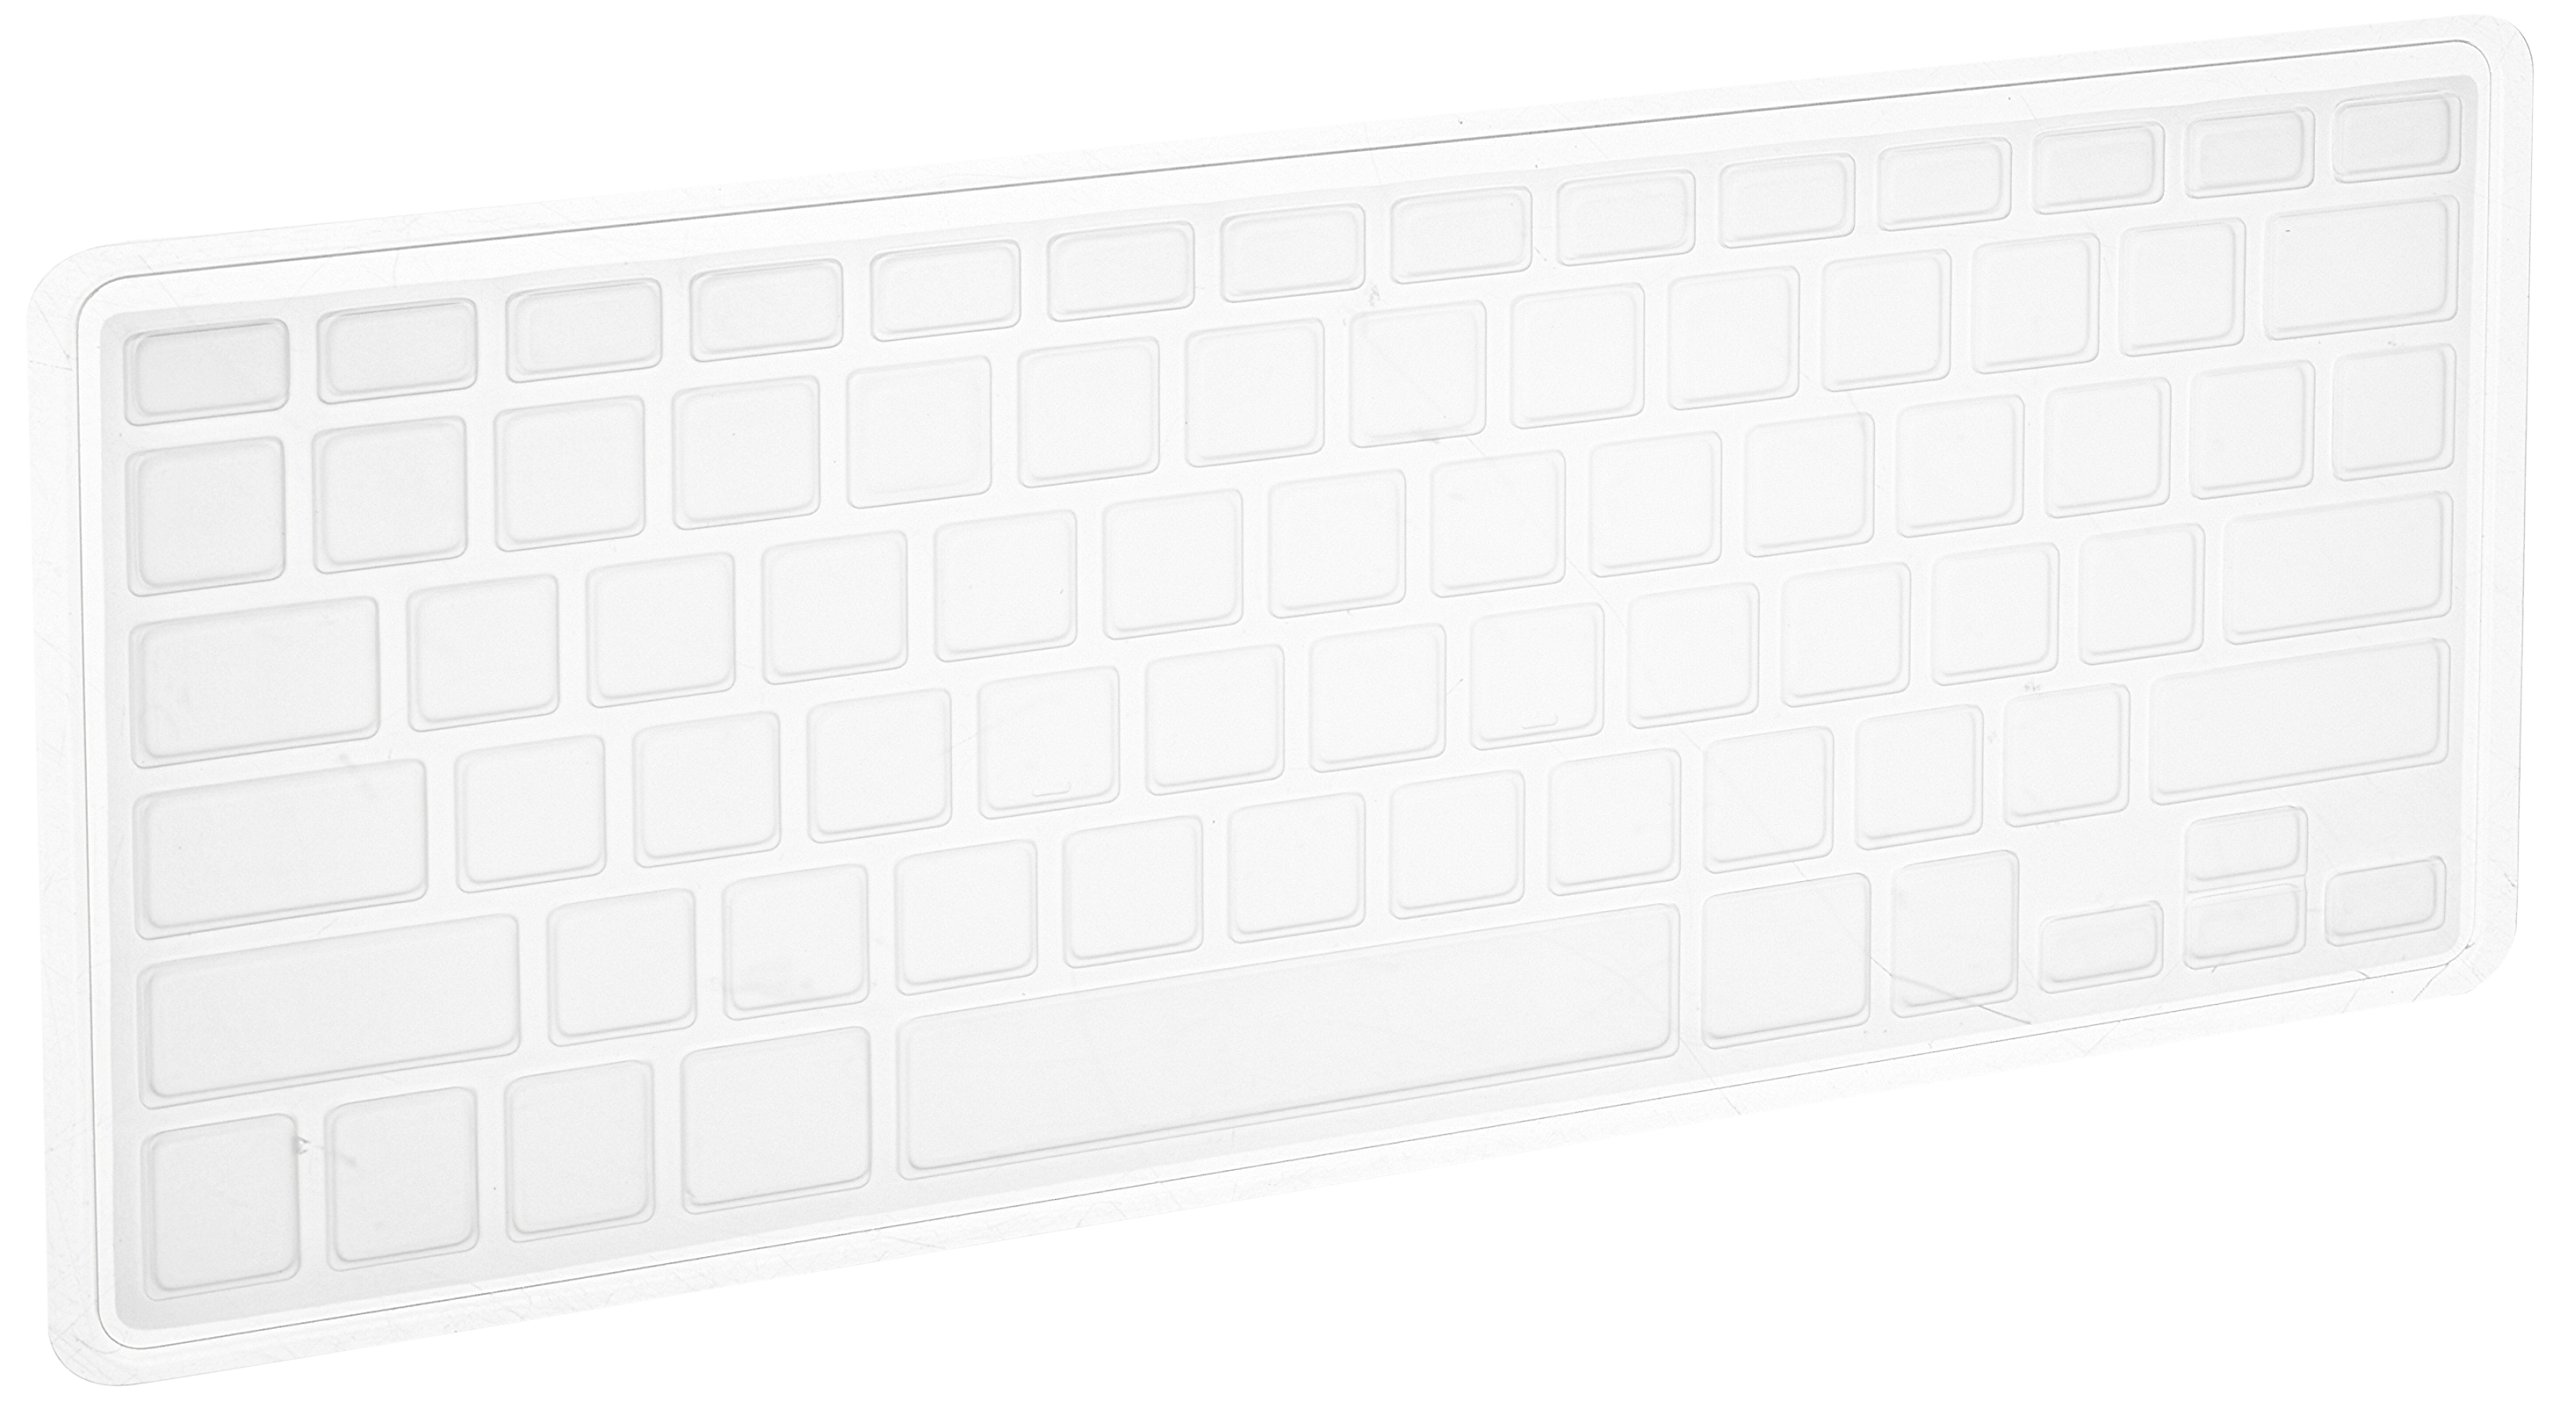 Buy UPPERCASE Ultra Thin Clear Soft TPU Keyboard Cover